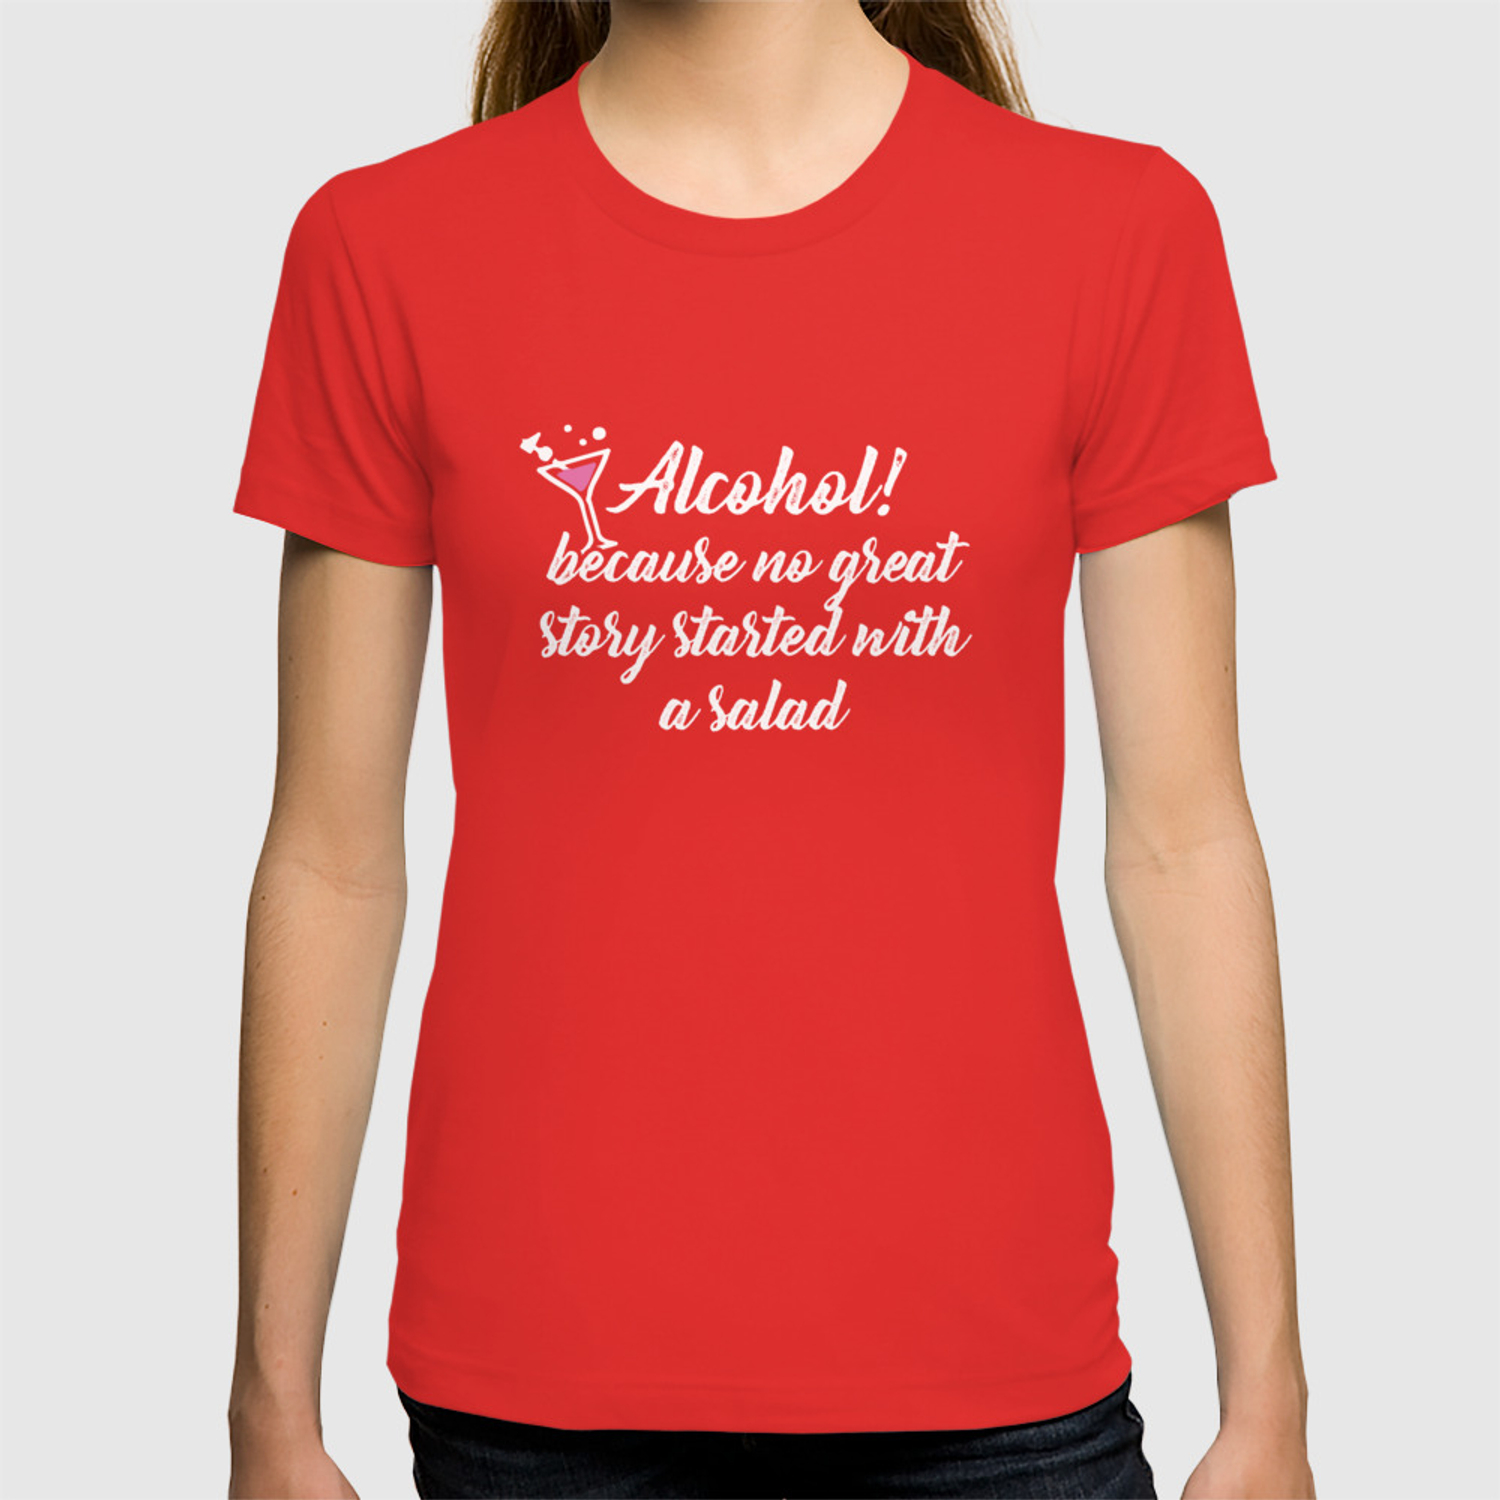 fe1b61d9 Funny Drinking Party Shirt Adult Humor Alcohol unisex shirt T-shirt by  top10merch   Society6